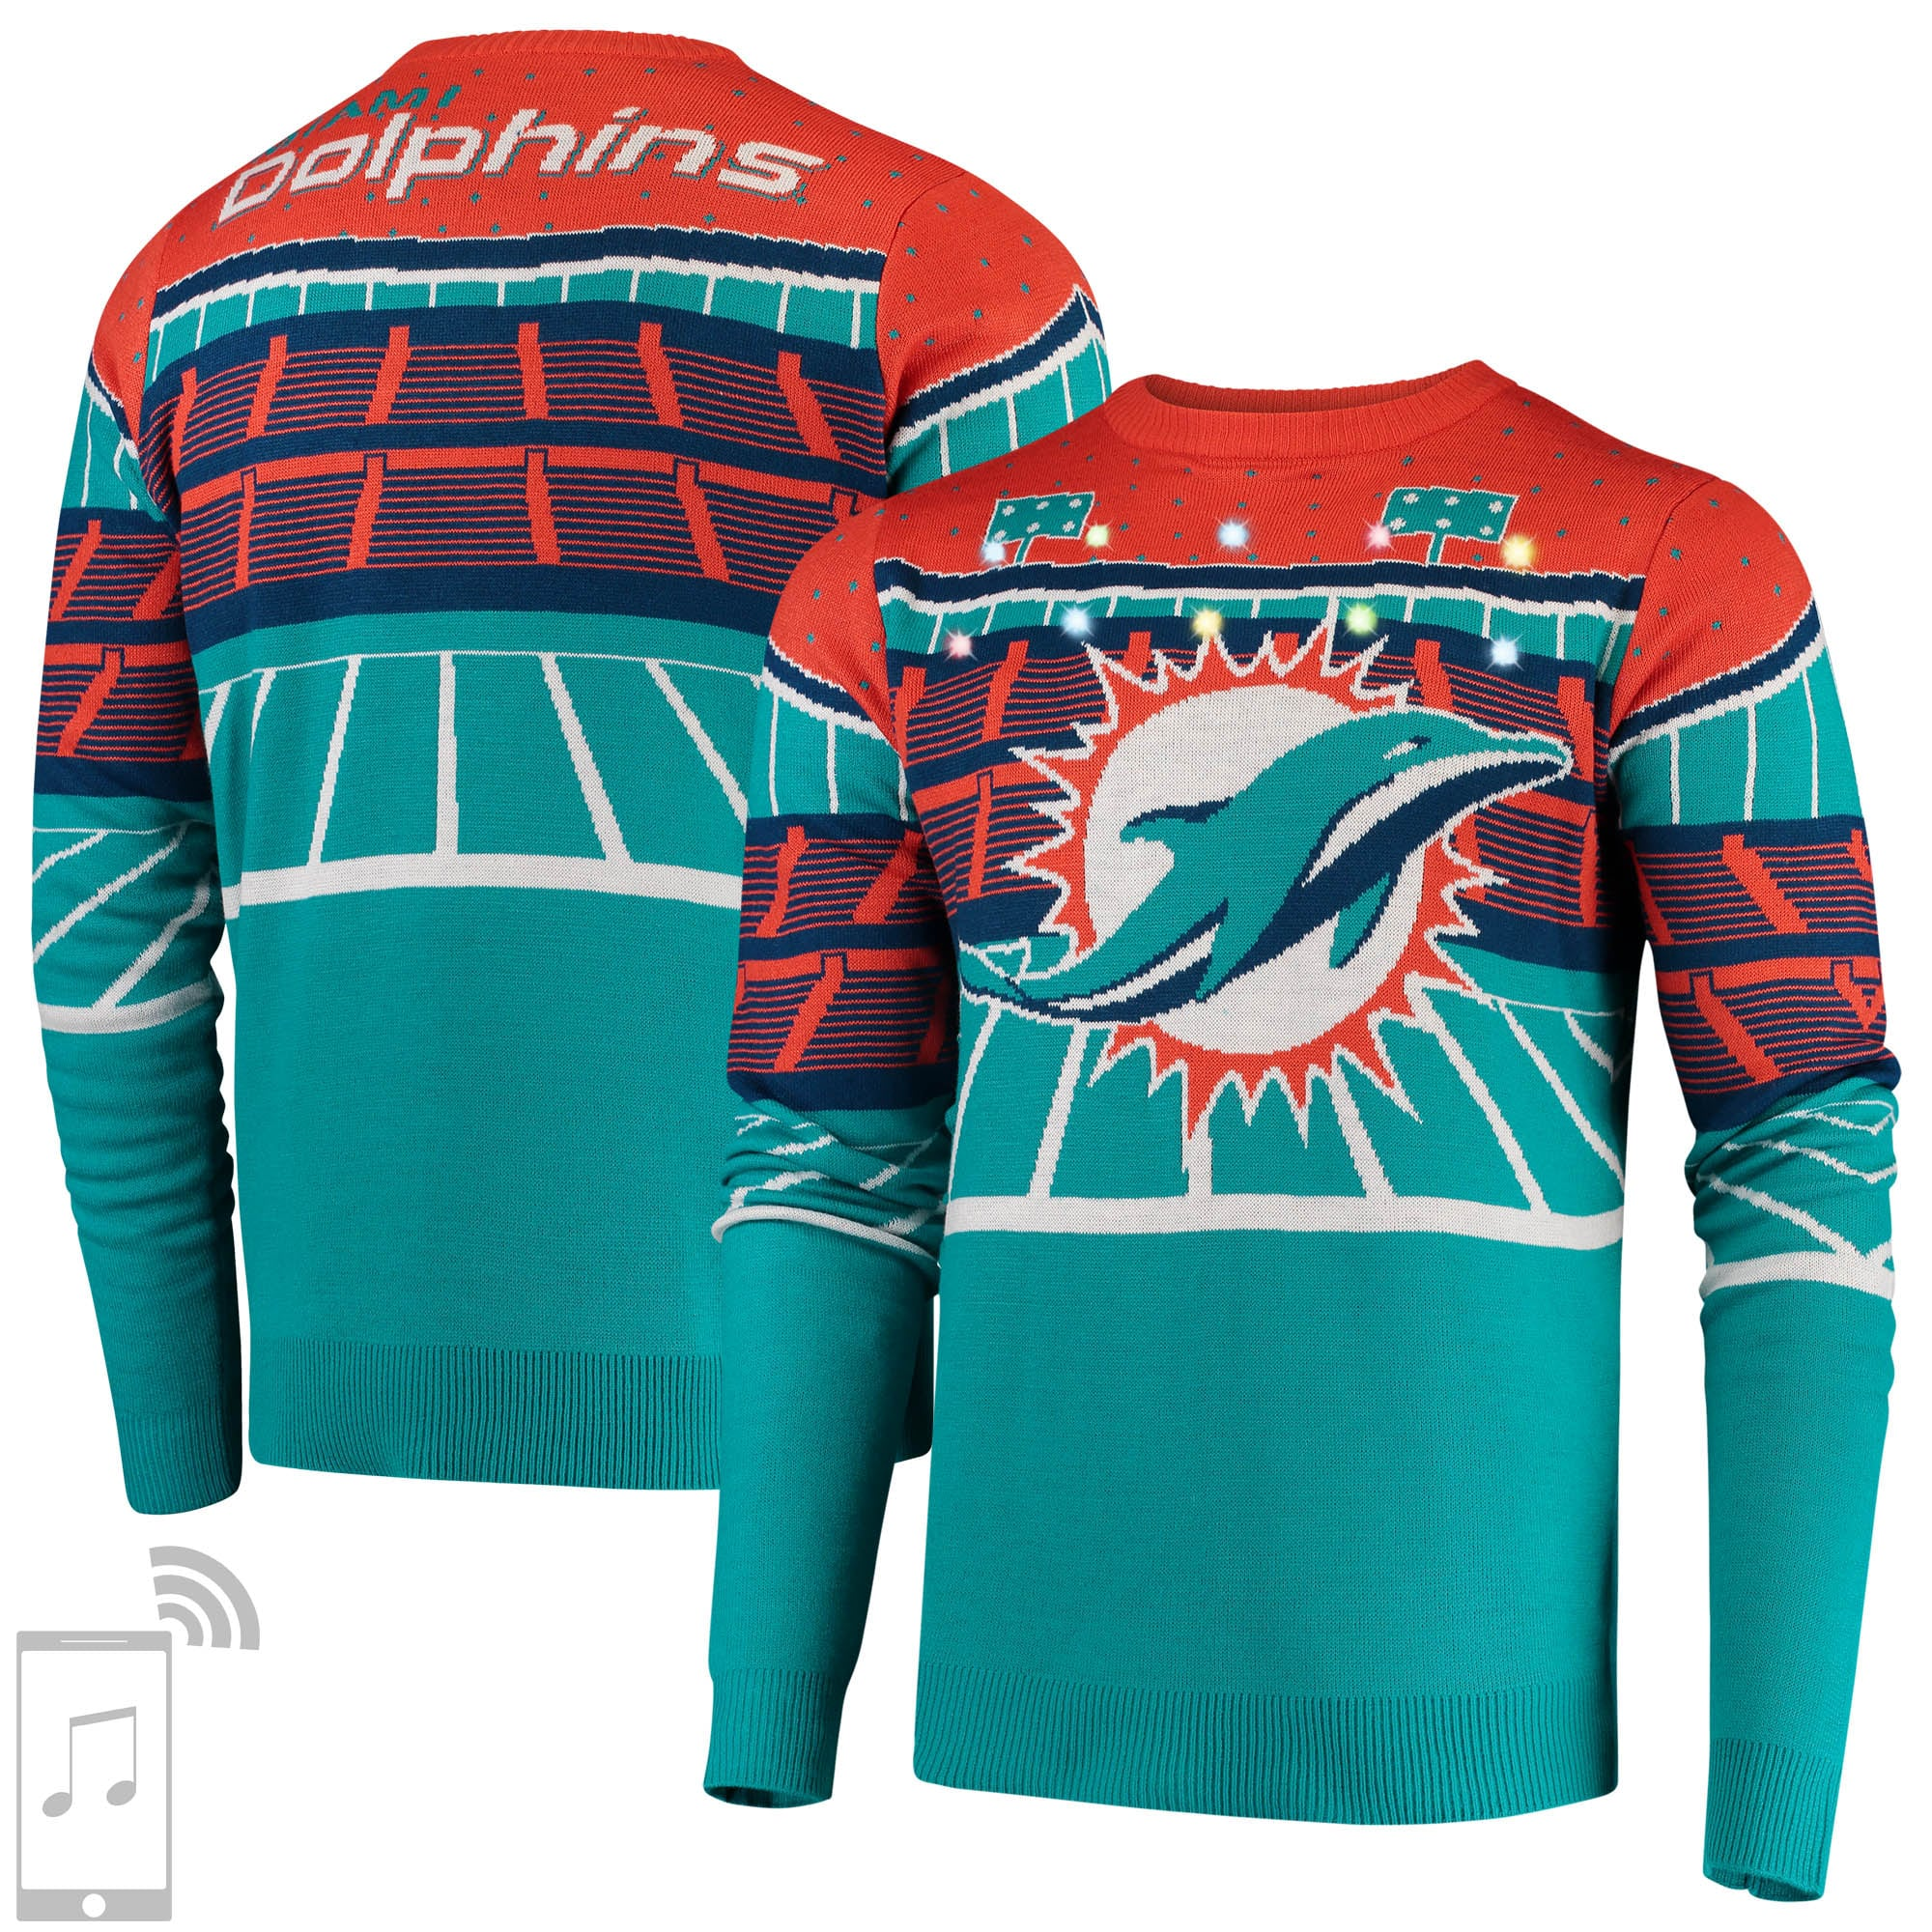 Miami Dolphins Bluetooth Light Up Ugly Sweater - Aqua